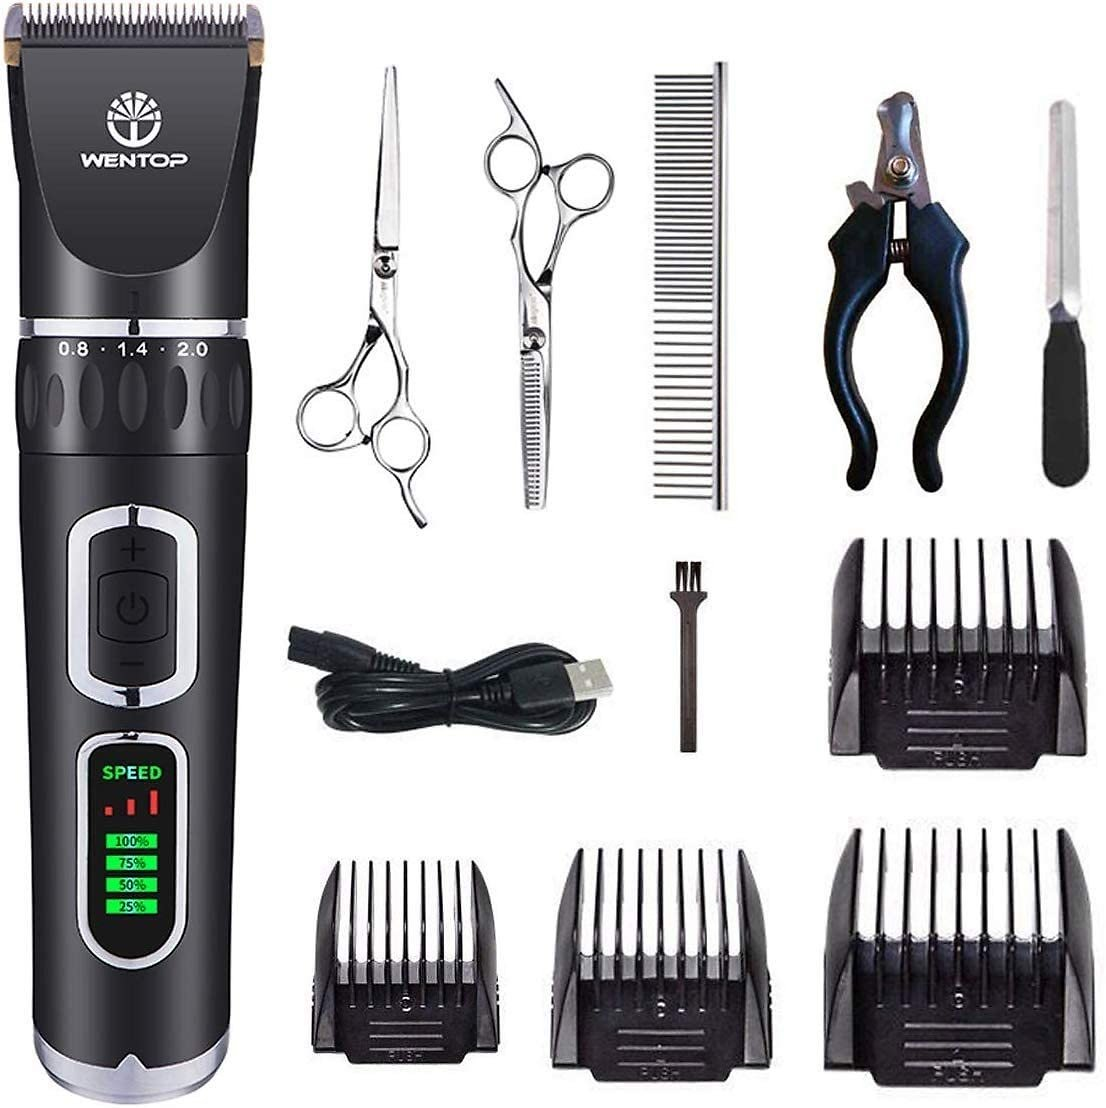 Prime Day Deal | 3-Speed Dog Grooming Clippers Kit